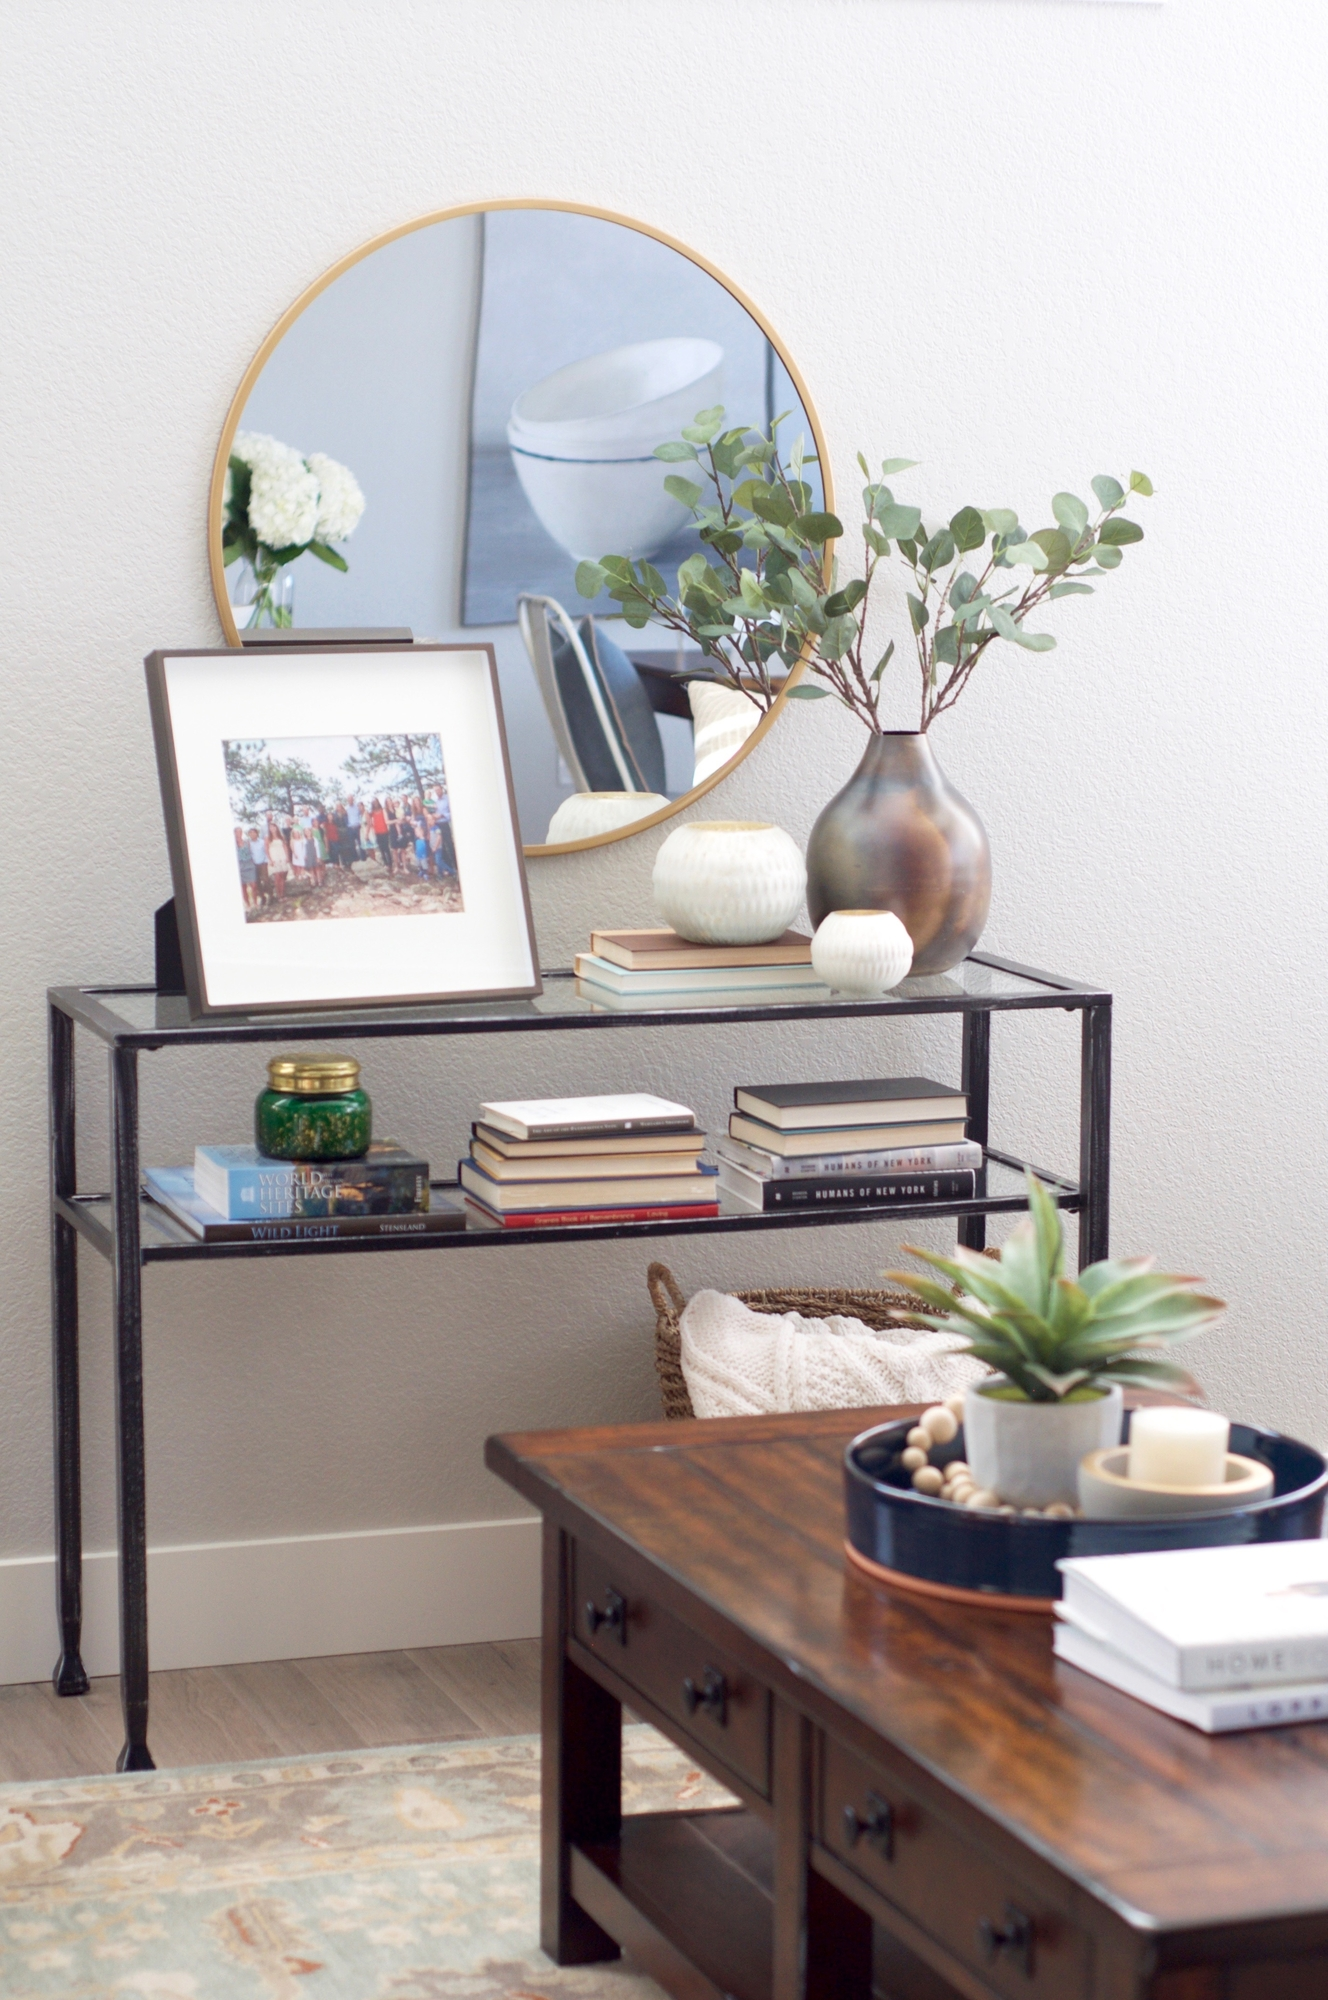 www.basilandtate.com | Green Mountain Project | Living Room | Townhome | Vignette